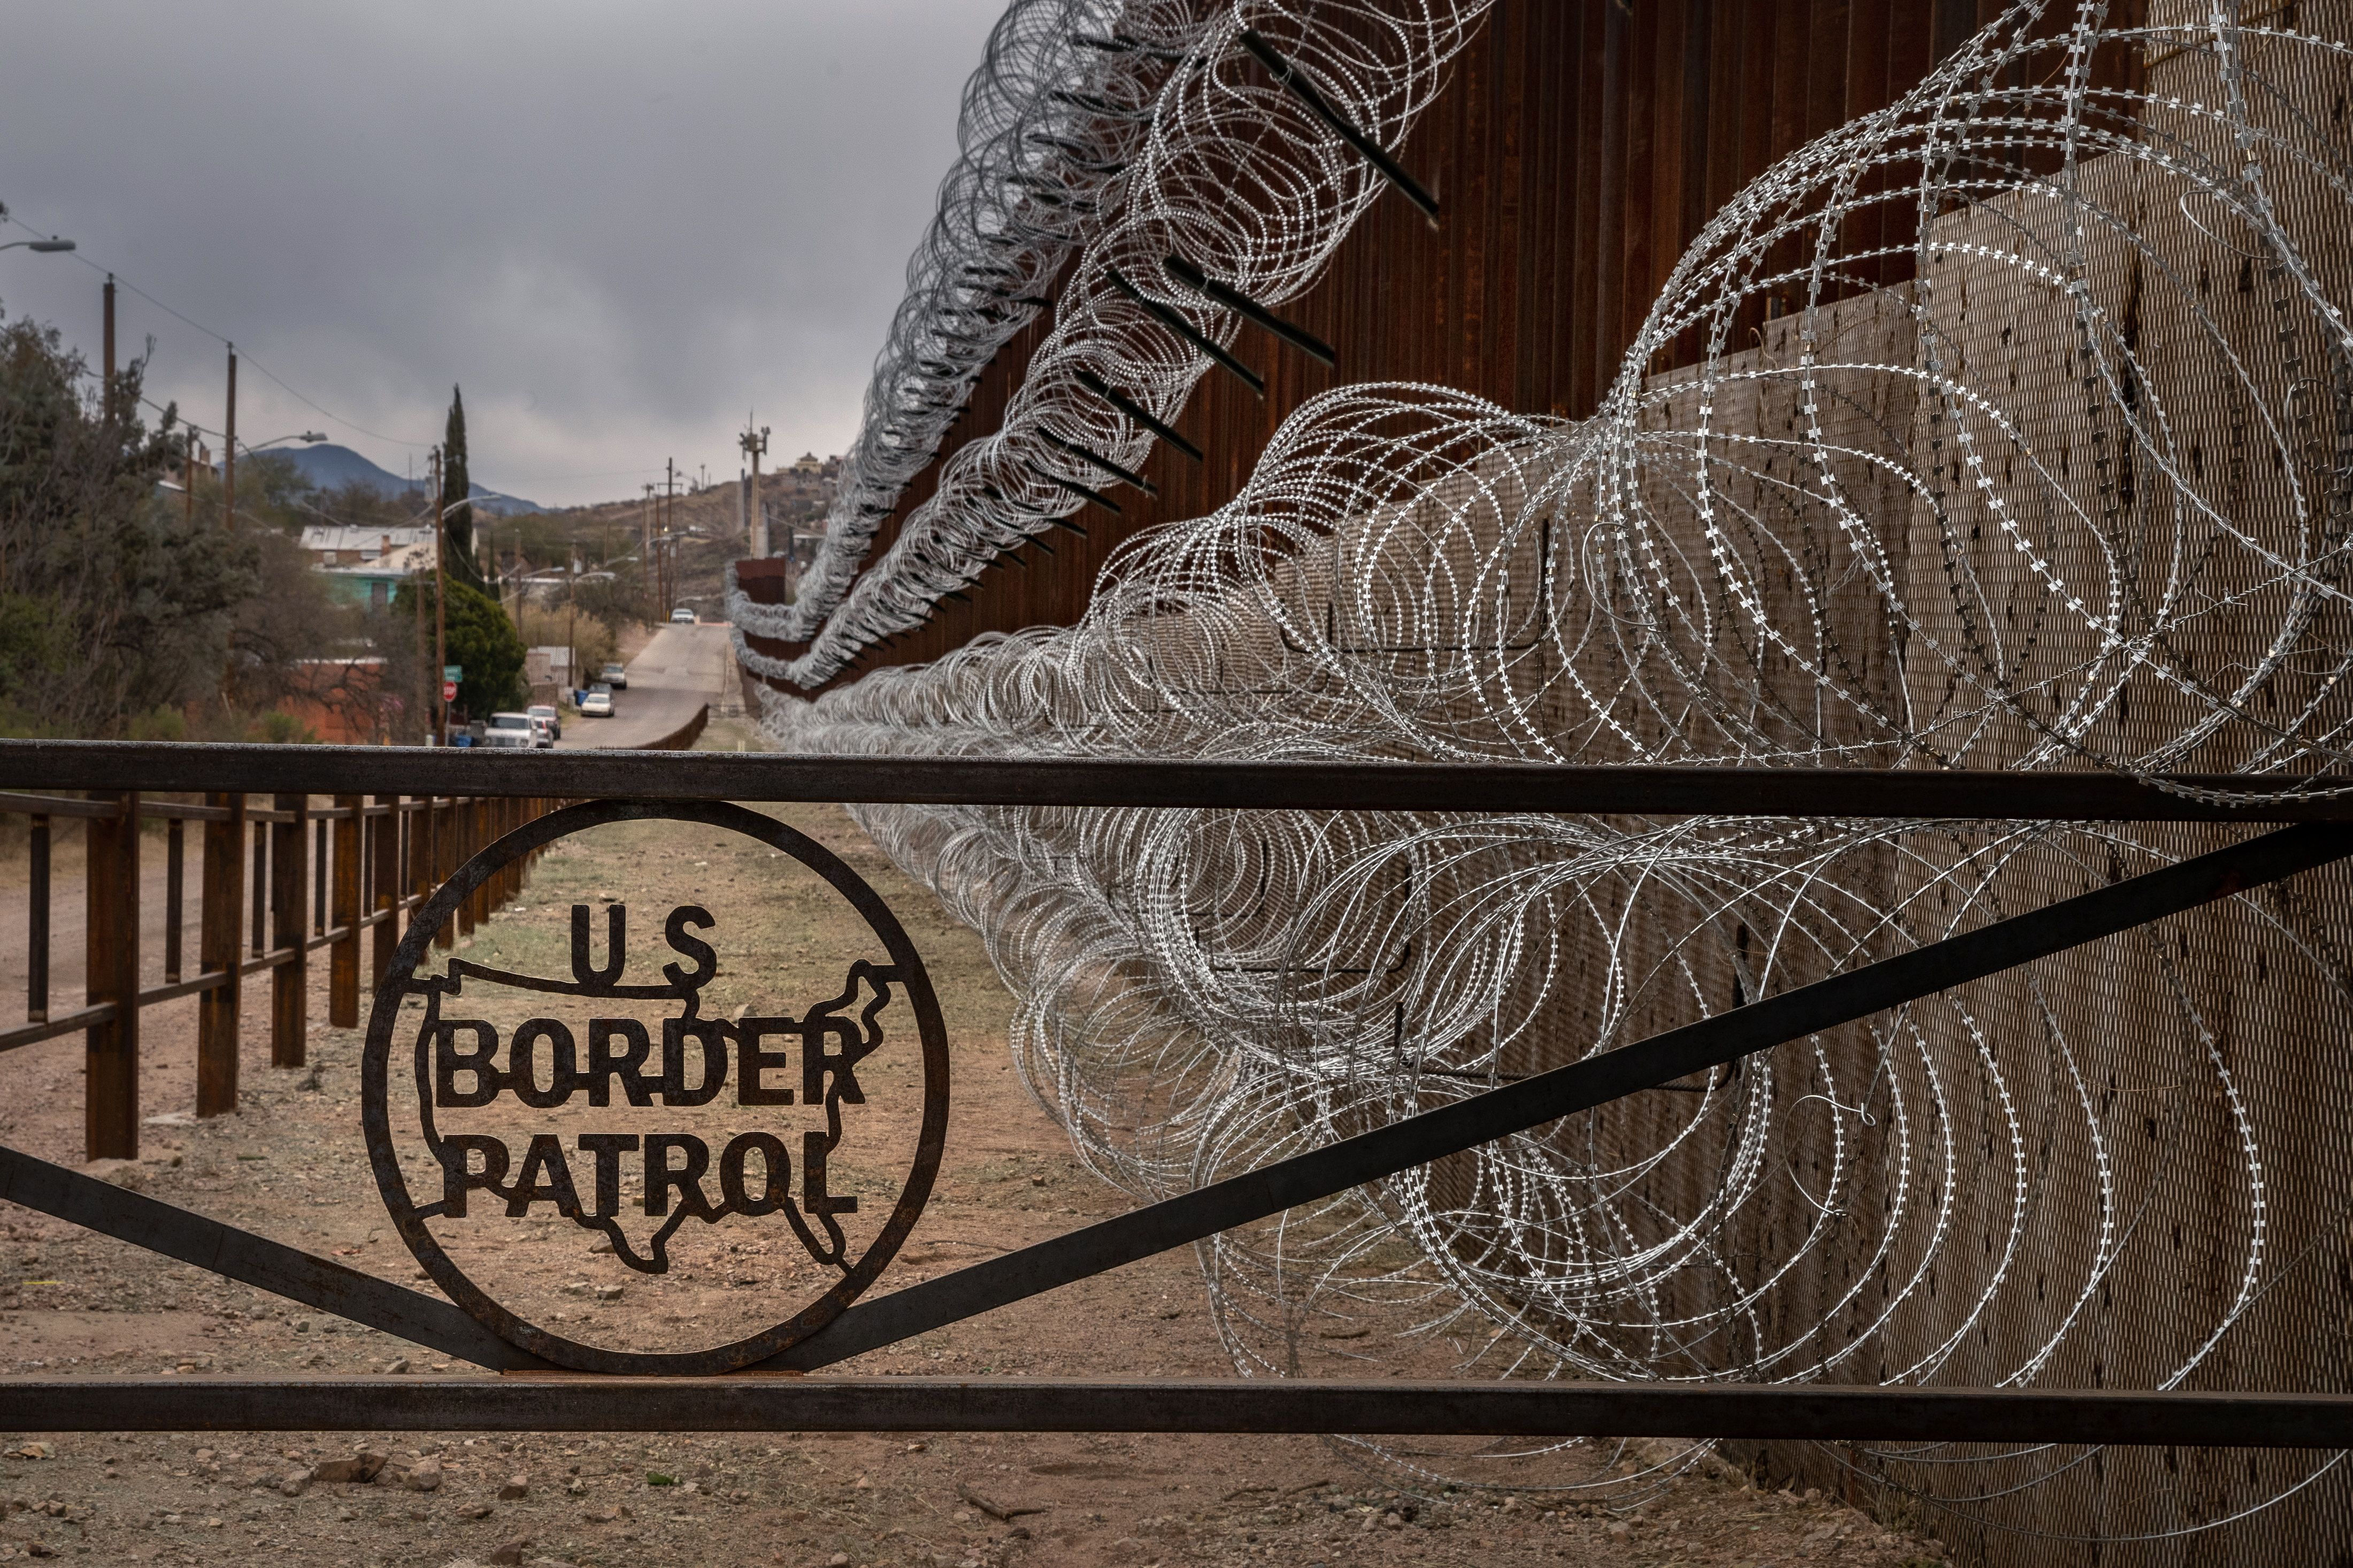 A barbed wire fence marked with the US Border Patrol sign at the US-Mexico border in Nogales, Arizona